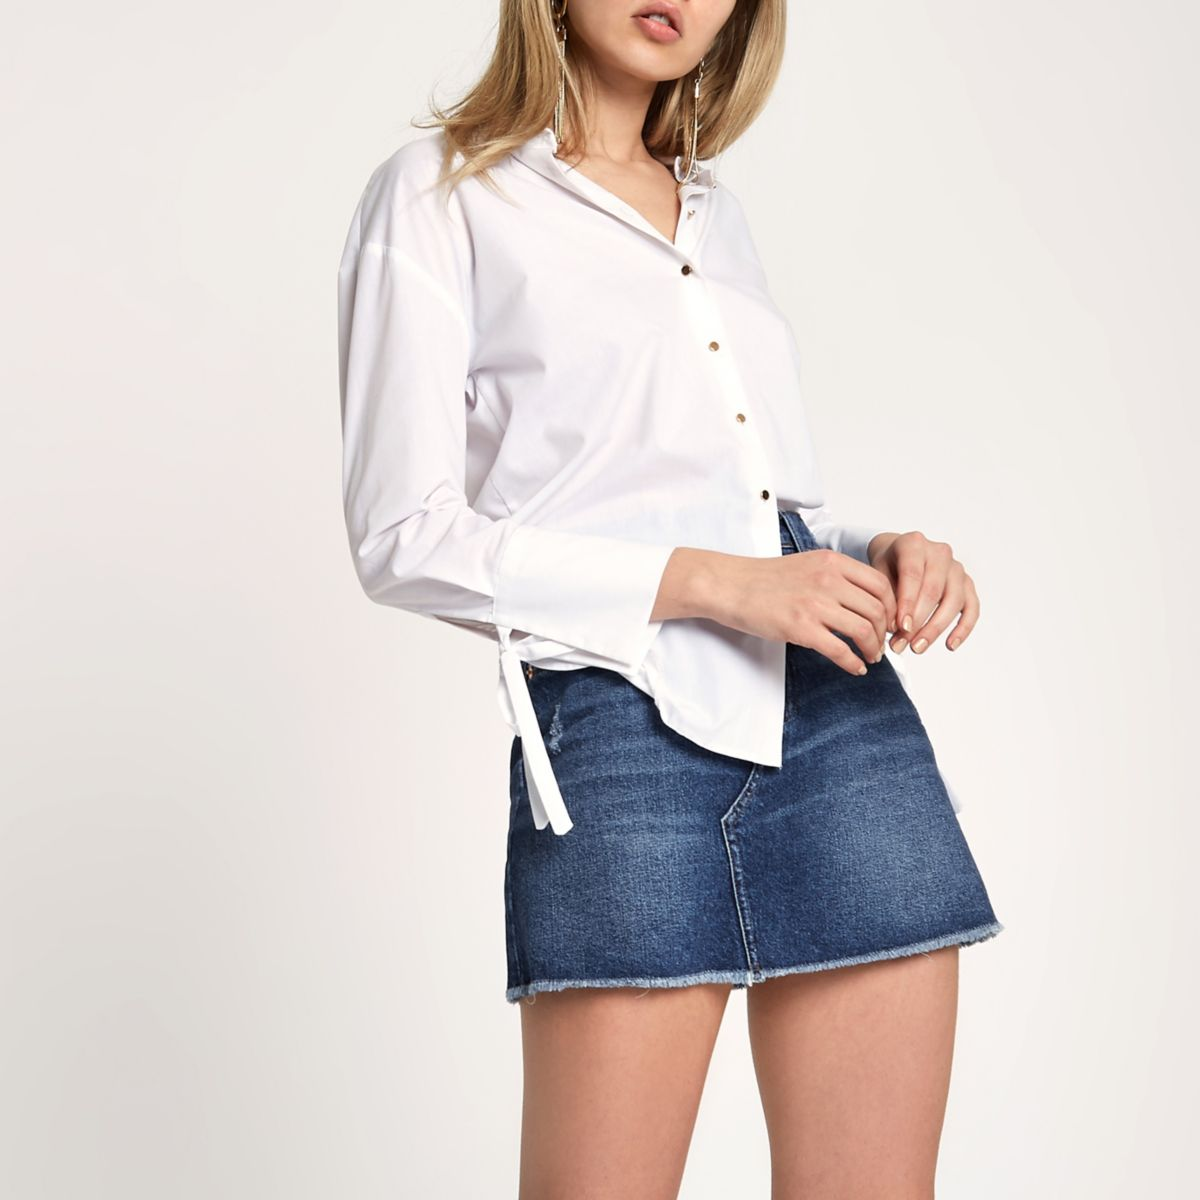 Womens Wholesale Blue Jean Mini Skirt Item As Low As $ Womens Sexy Mini Skirt Zip Fly w/ Button Closure Item As Low As $ Women's Wholesale Sexy Undone Hem Mini Skirt Item As Low As $ Featured Item: Men's Fashion Chambray shirt As low as: $ each.